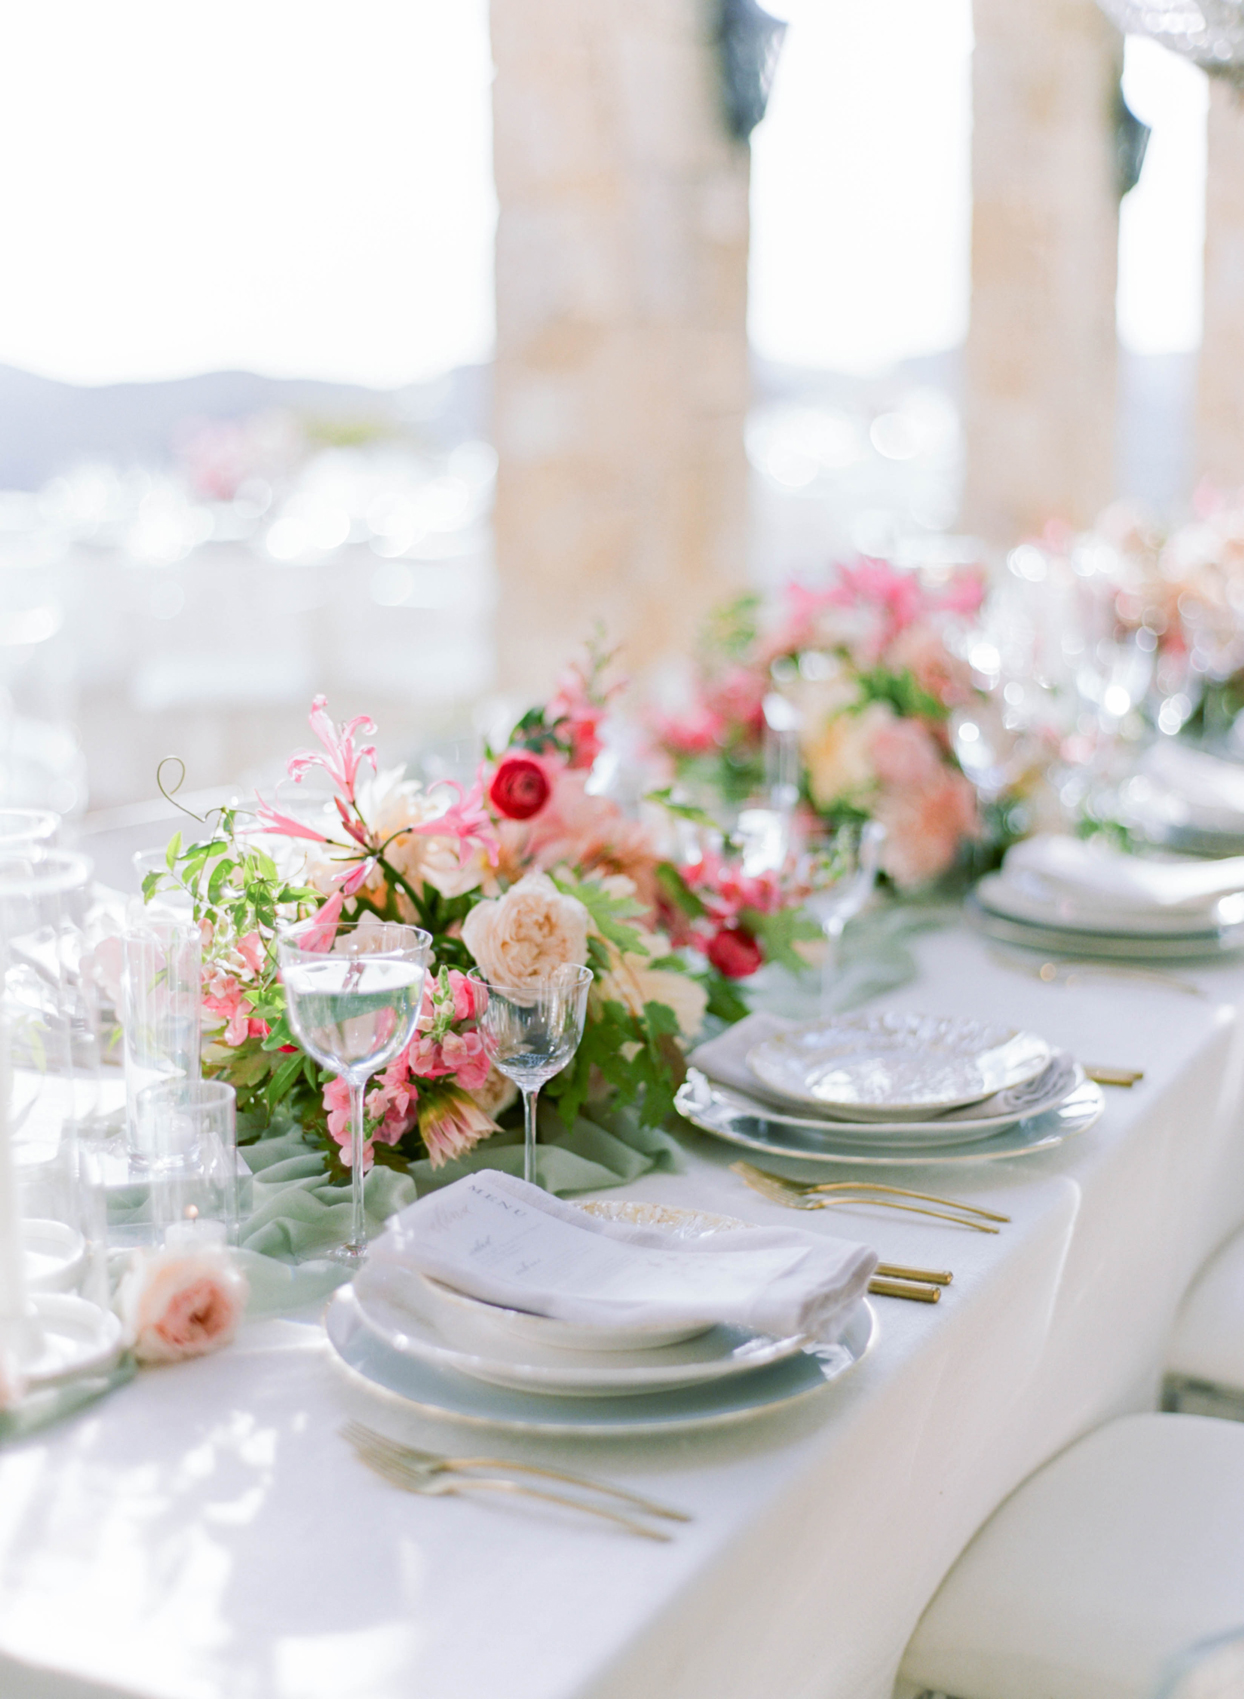 white table settings with pink floral centerpieces